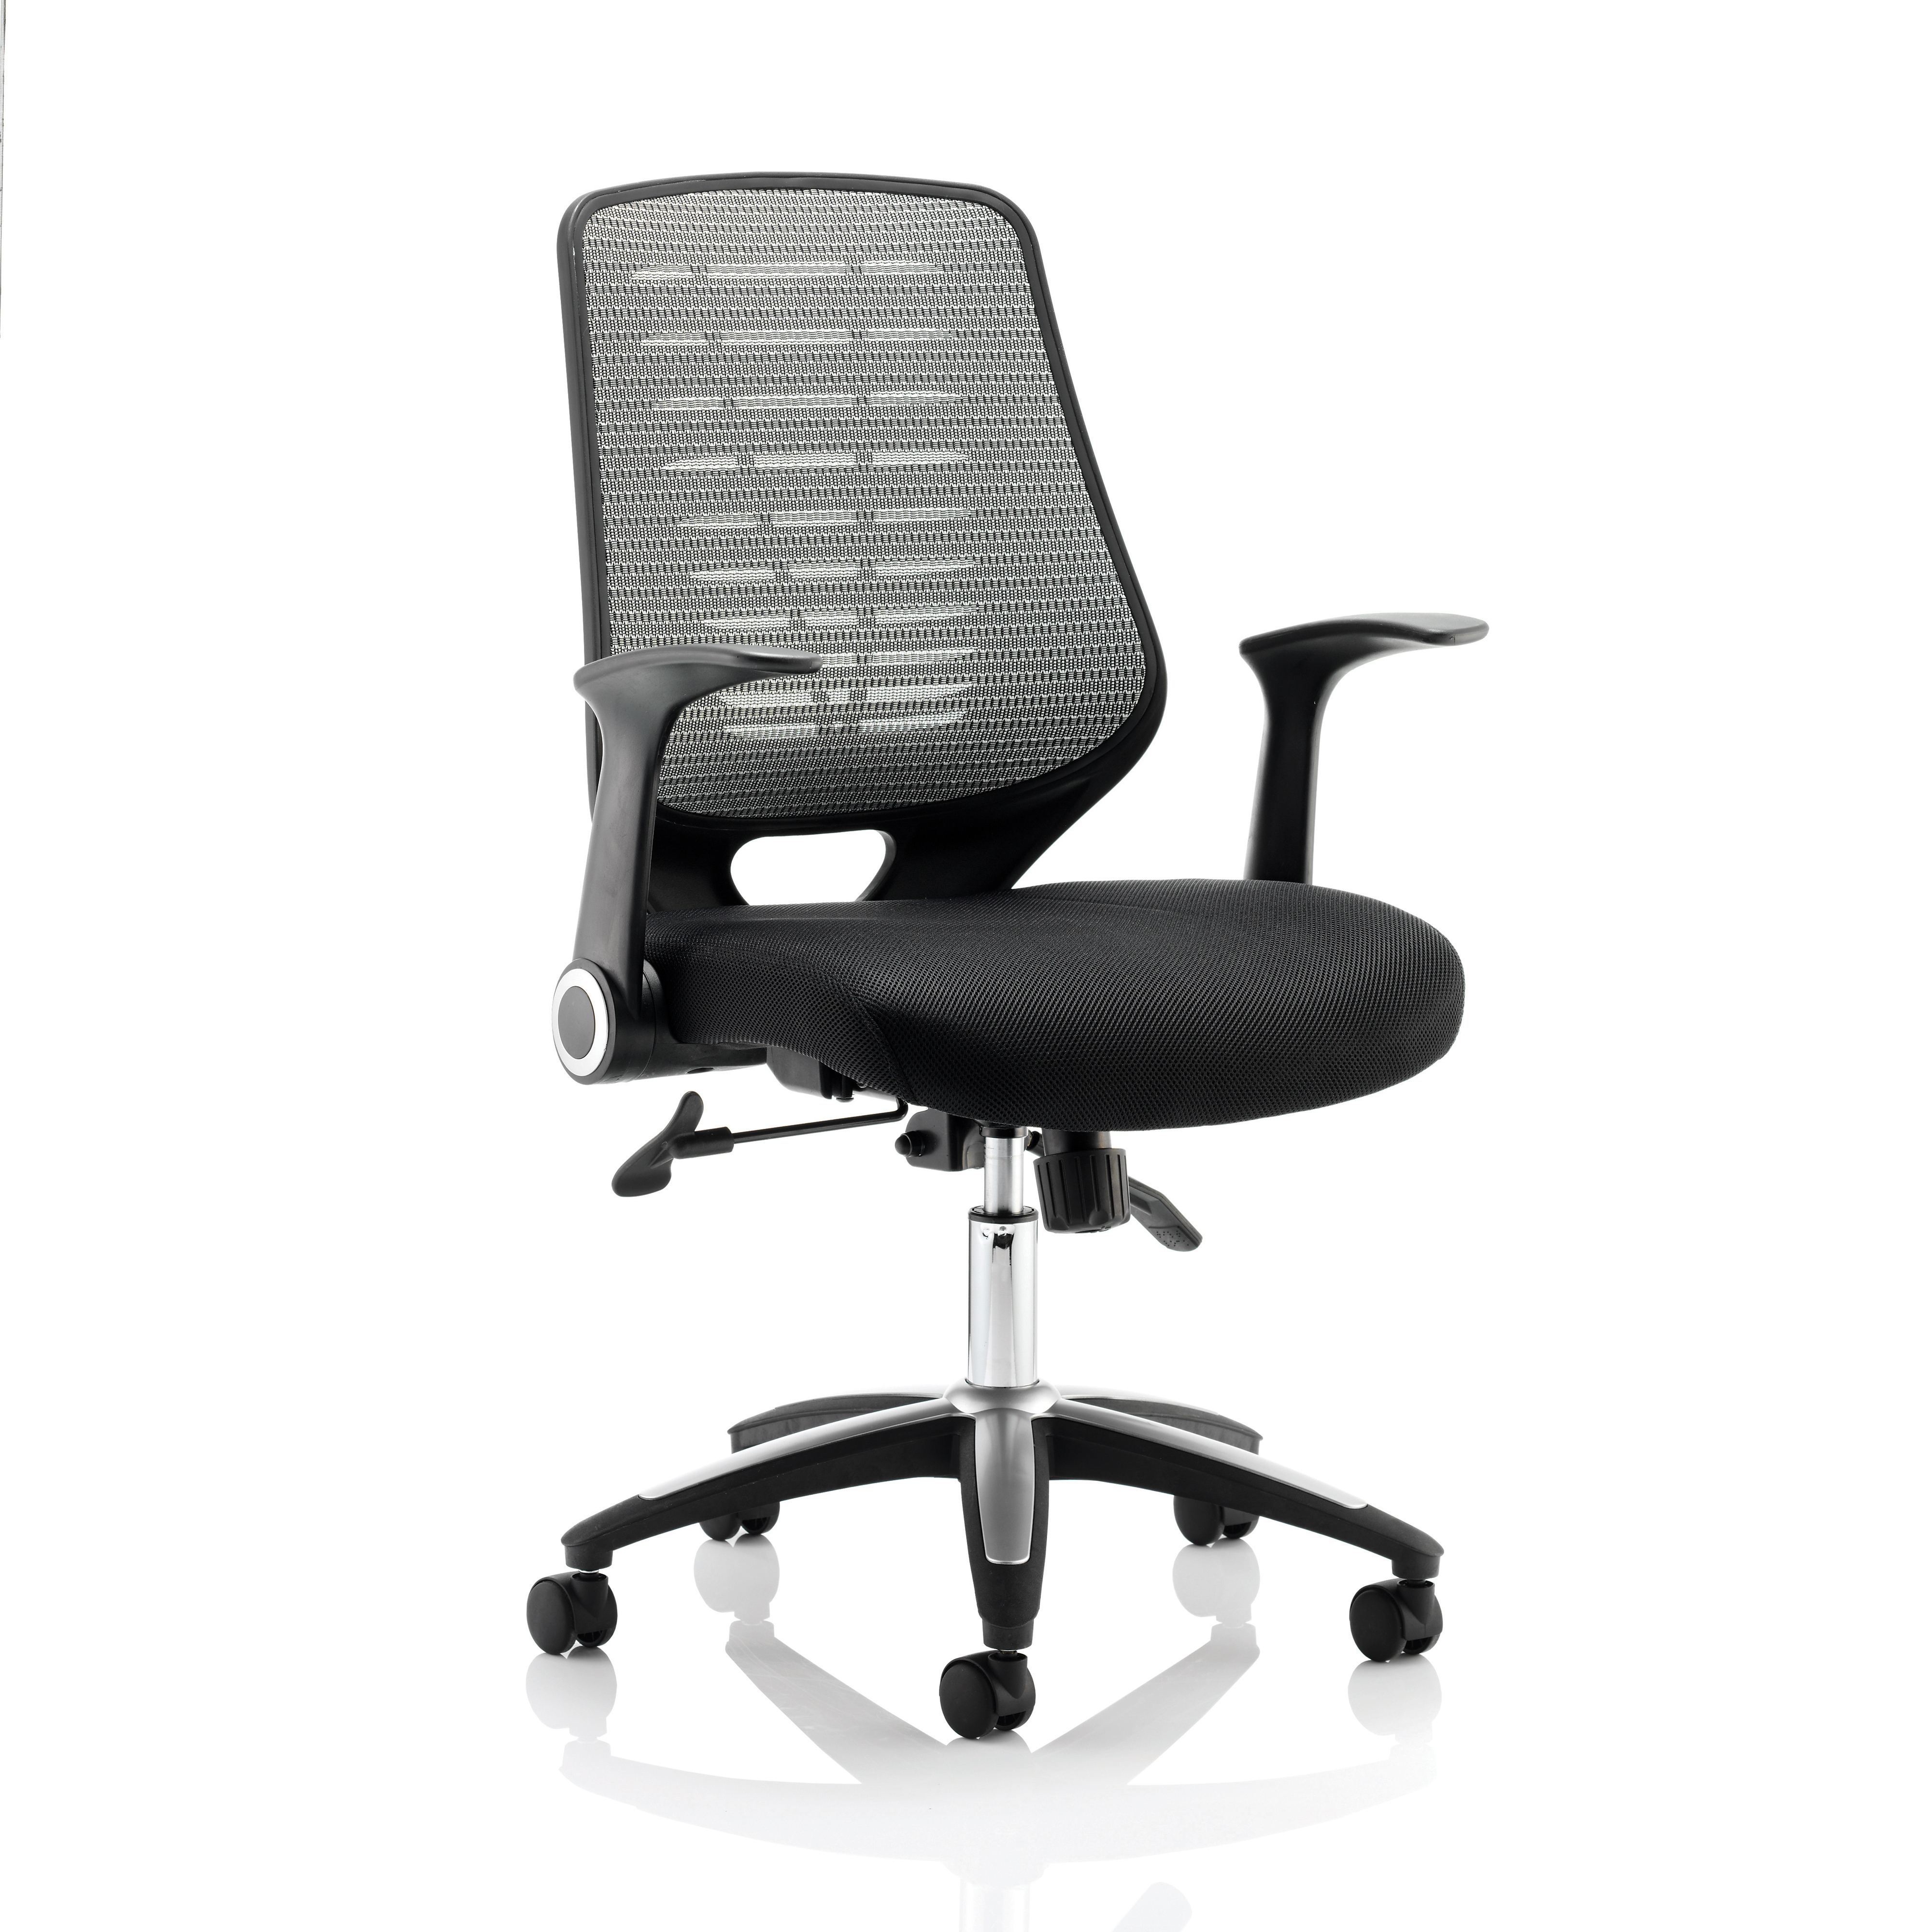 Task seating Sonix Relay Mesh Operator Chair Silver 500x490x460-550mm Ref OP000116